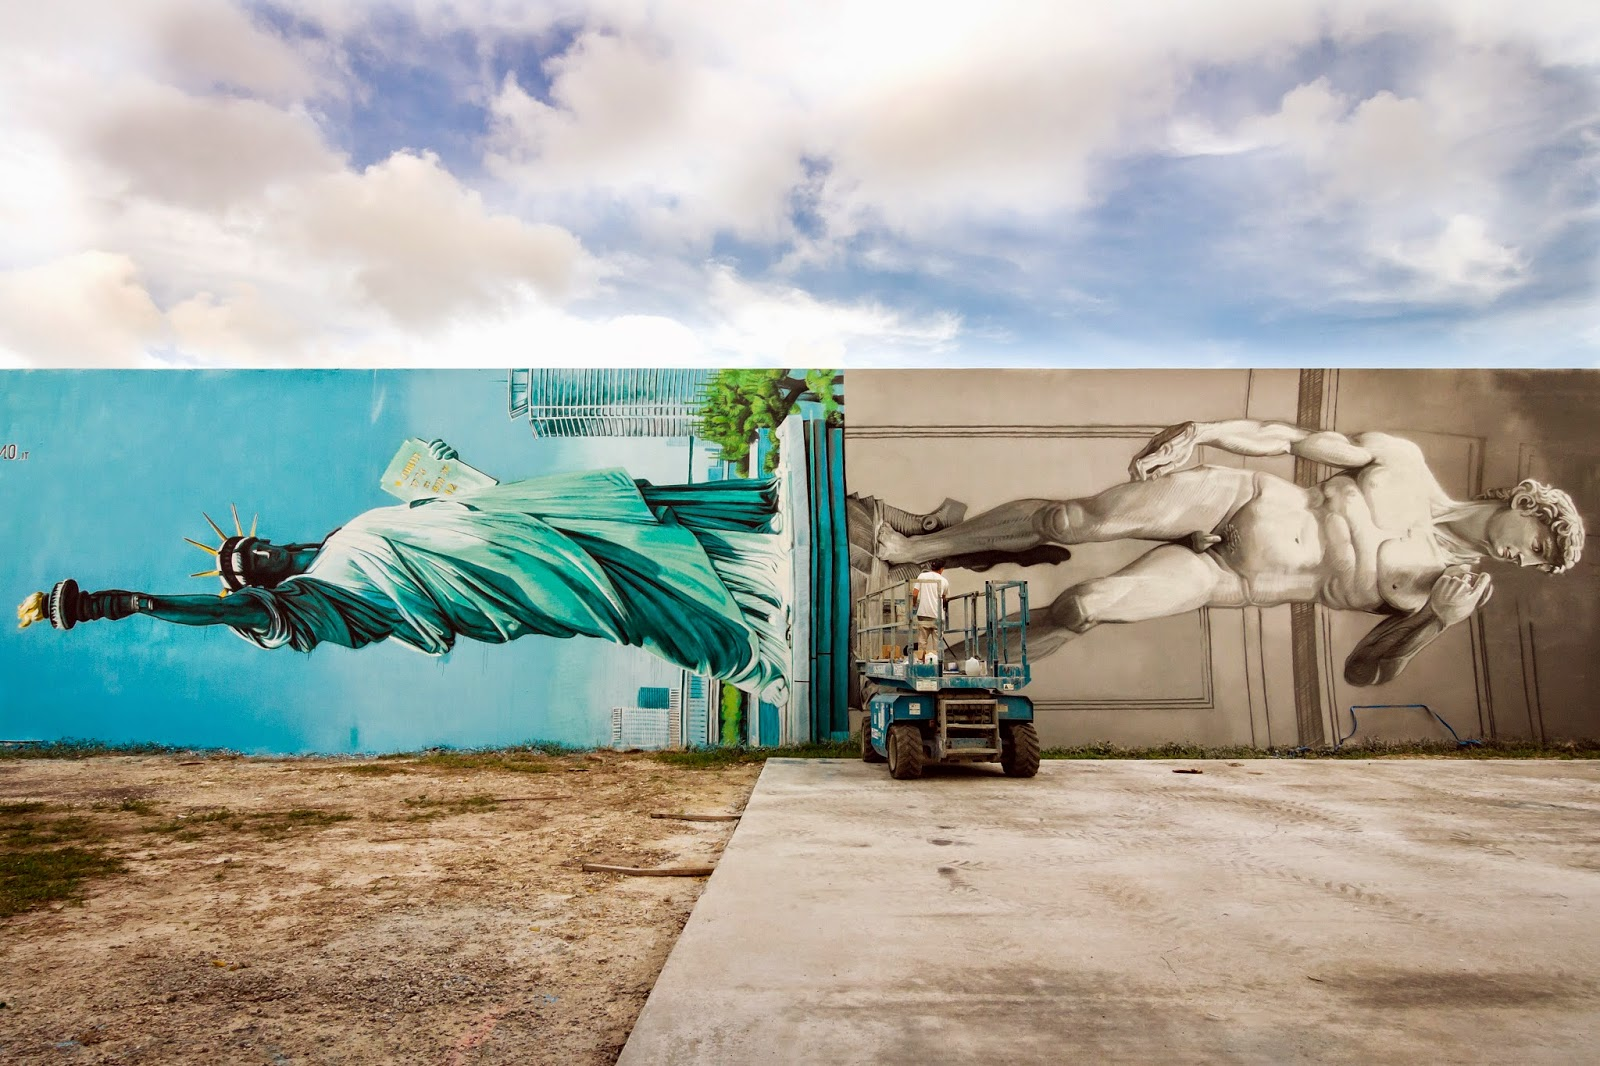 Our friend Ozmo is currently in Miami, USA where he just finished working on this impressive new piece.